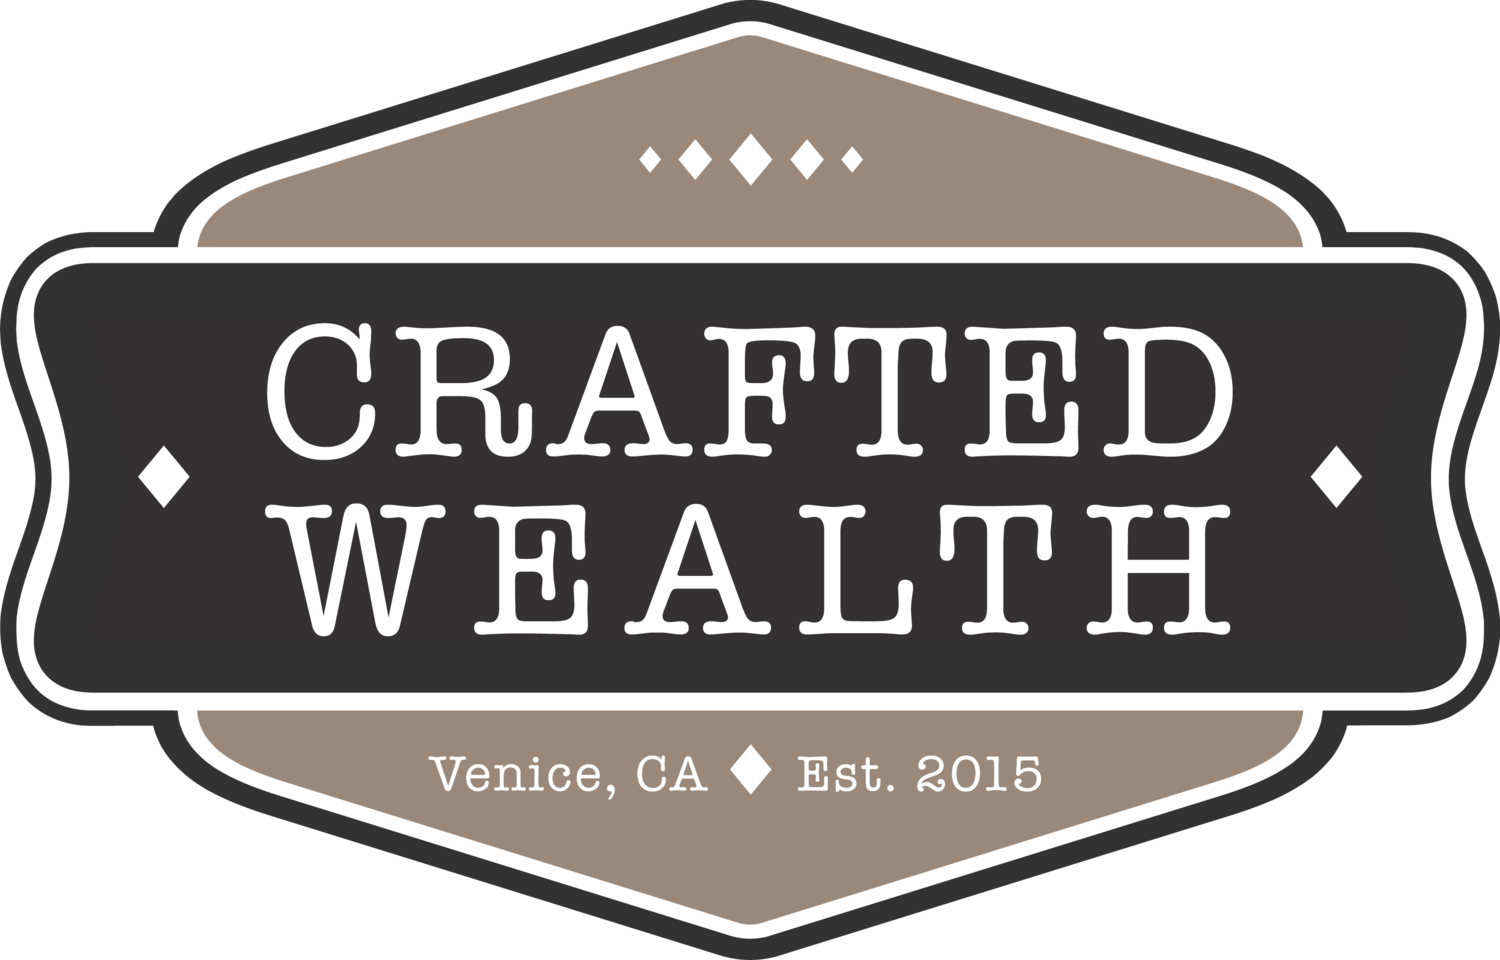 Crafted Wealth - Fiduciary & Fee-Only Financial Advisors